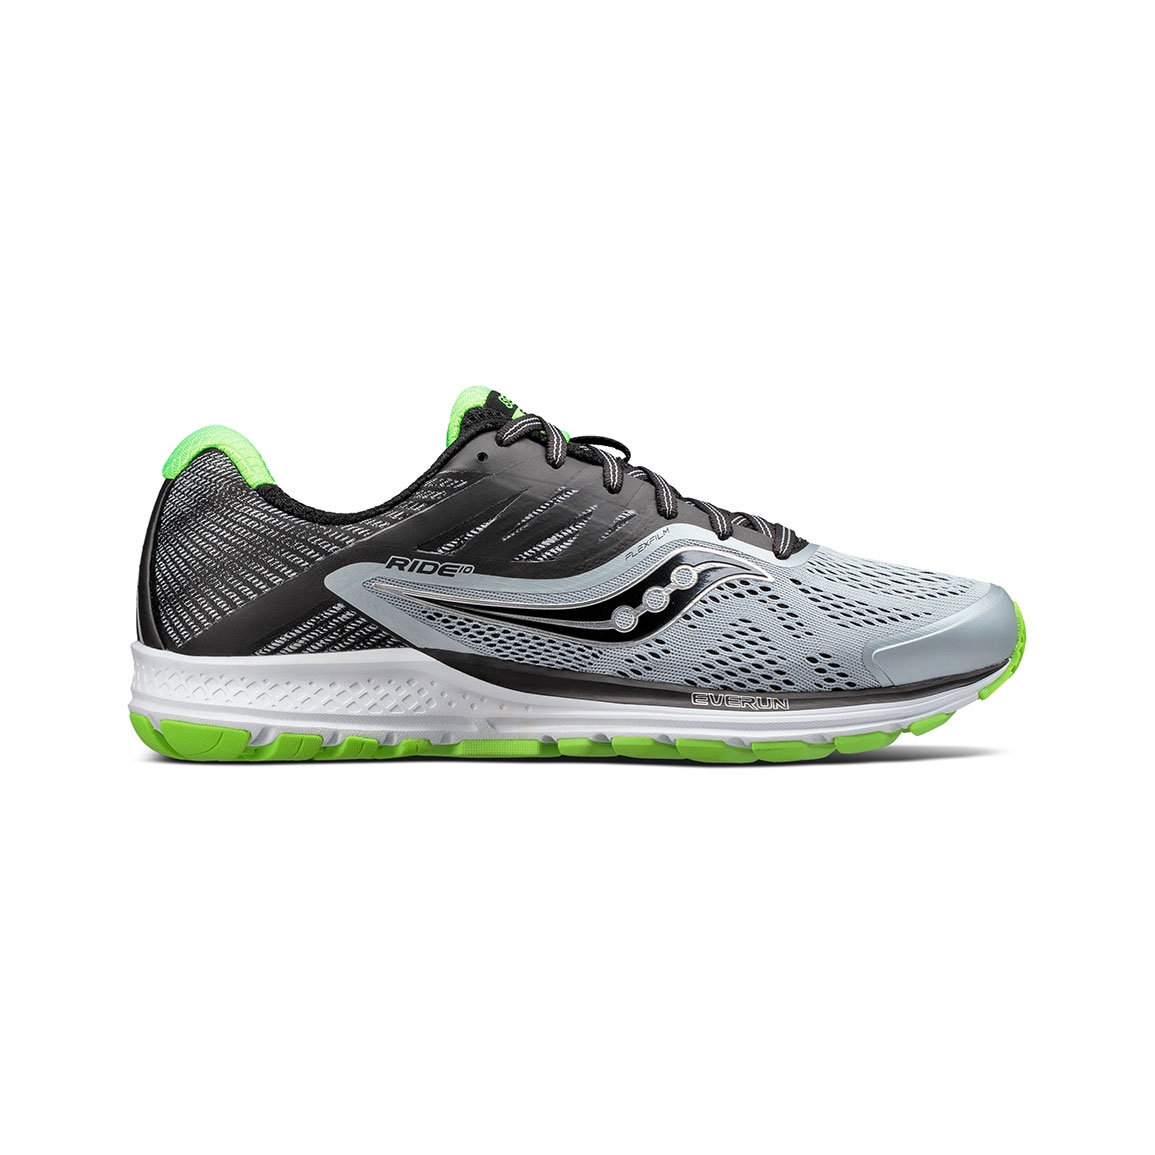 Men's Saucony Ride 10 Running Shoe - Color: Grey/Black/Slime (Regular .